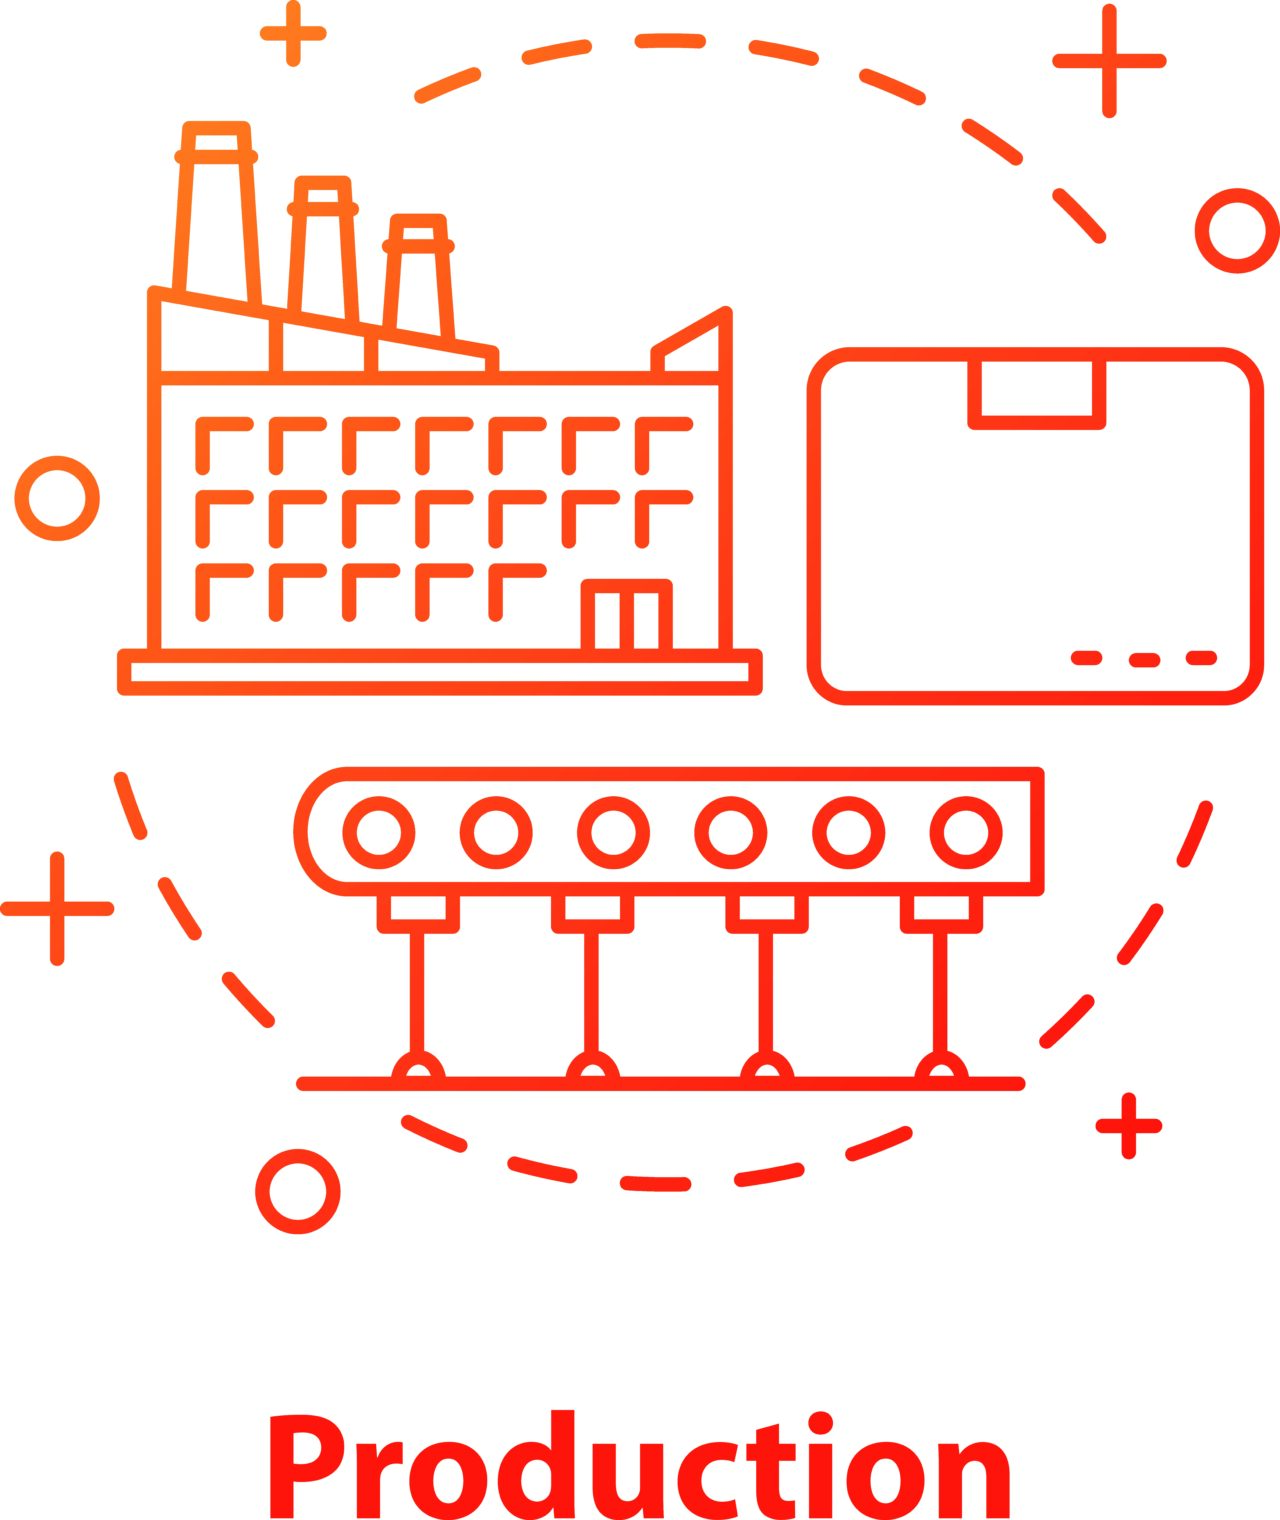 An illustrated image showing how the pandemic is enforcing digitalization in the manufacturing industry.